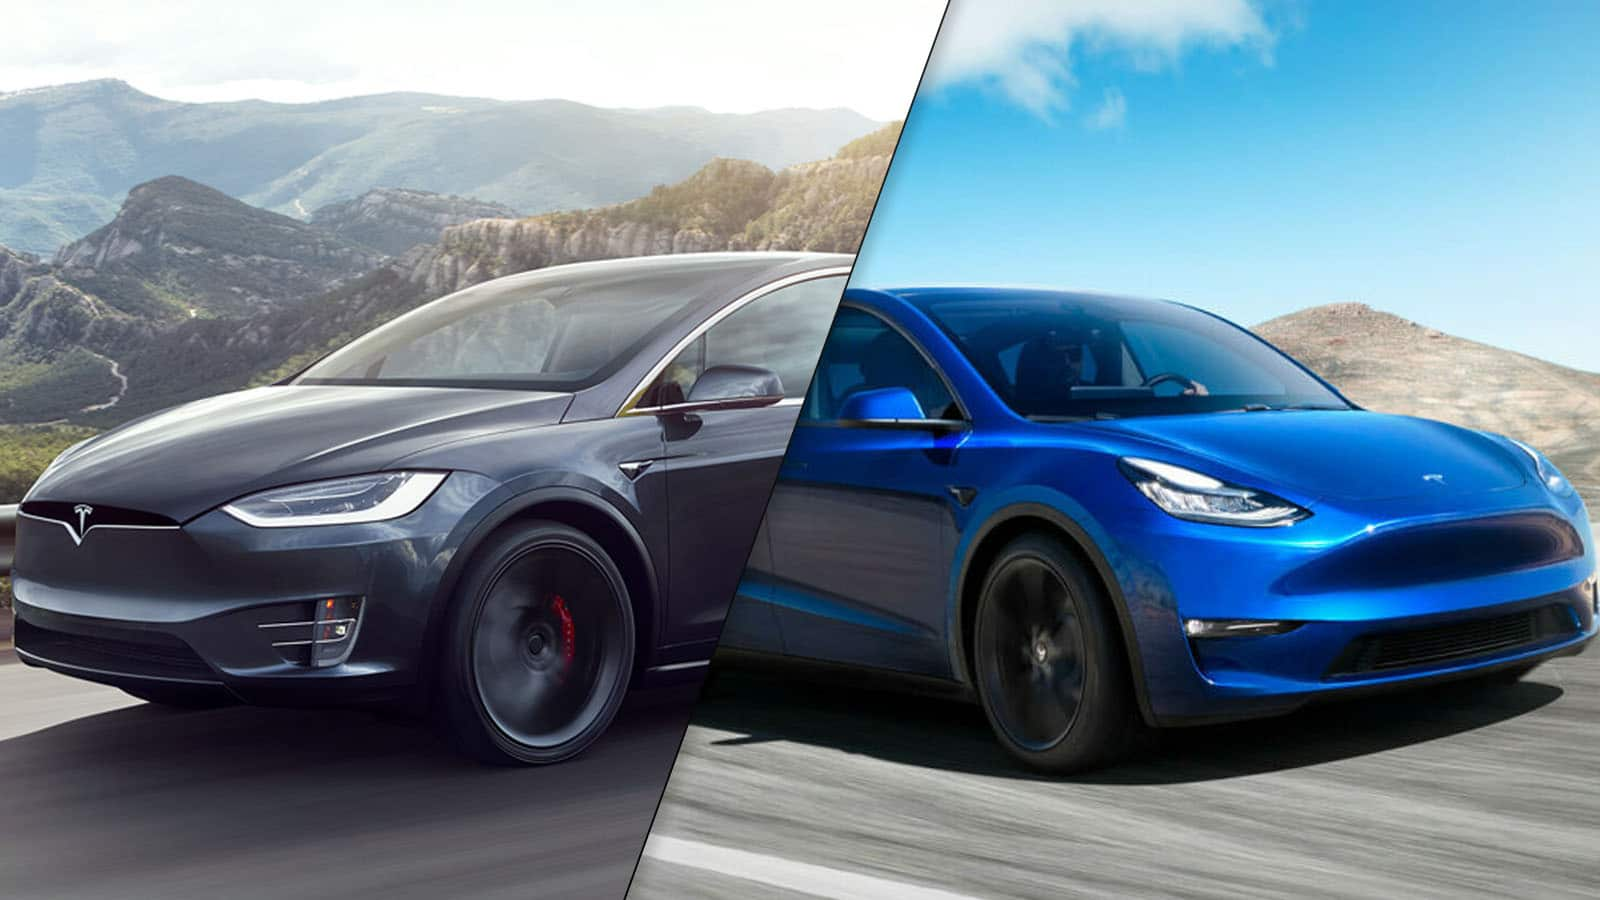 Model Y Photo: Tesla Model Y, 2019 Honda Passport, BMW 8 Series: Comparo